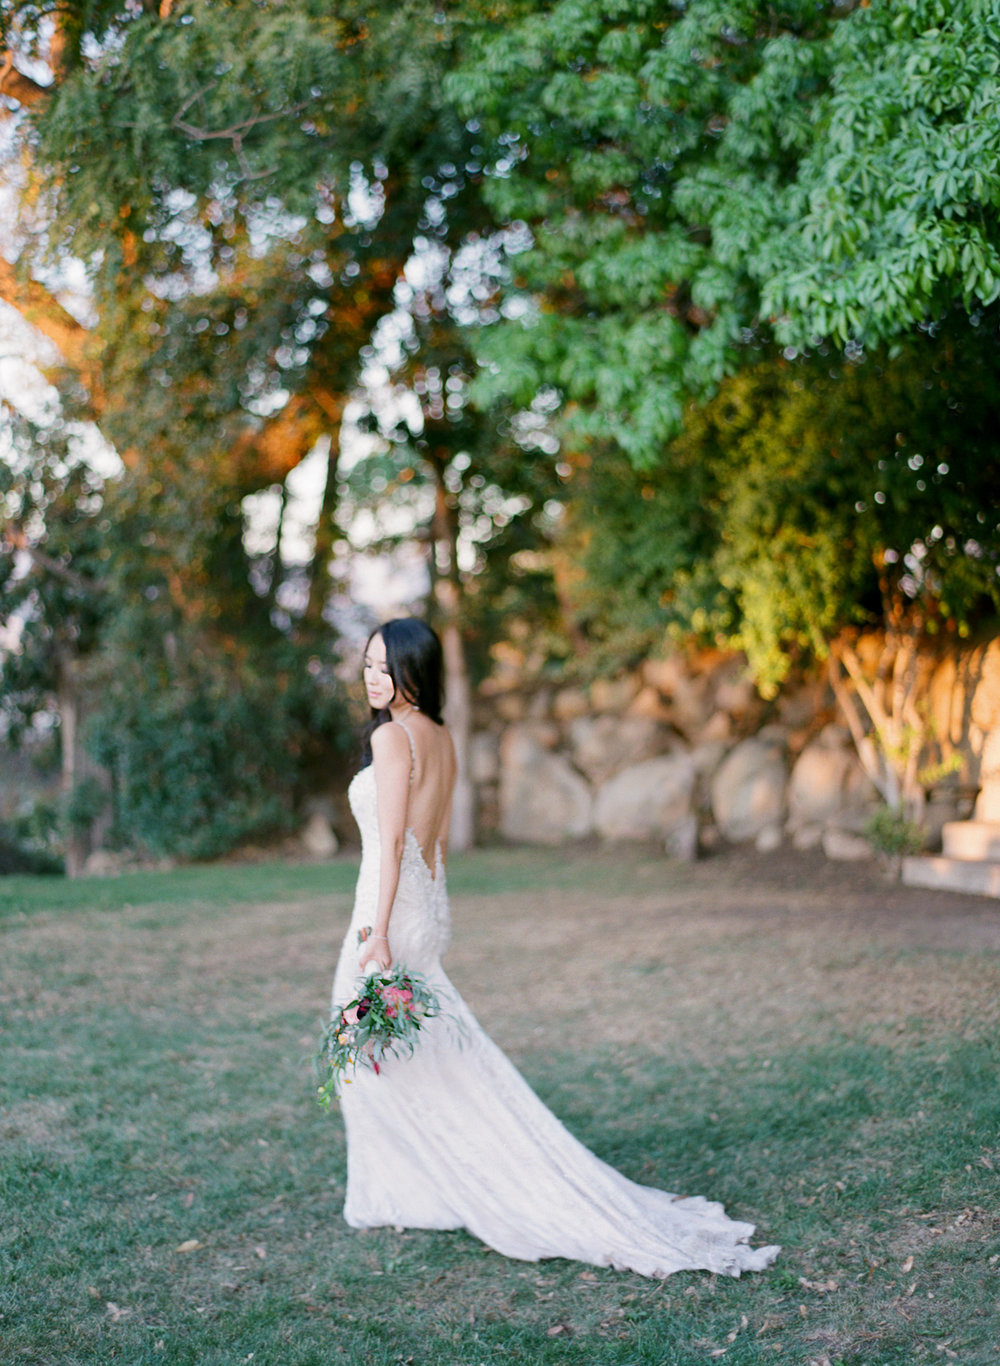 Canfield-Moreno Estate - Paramour Mansion - Los Angeles Wedding - For the Love of It-028.jpg